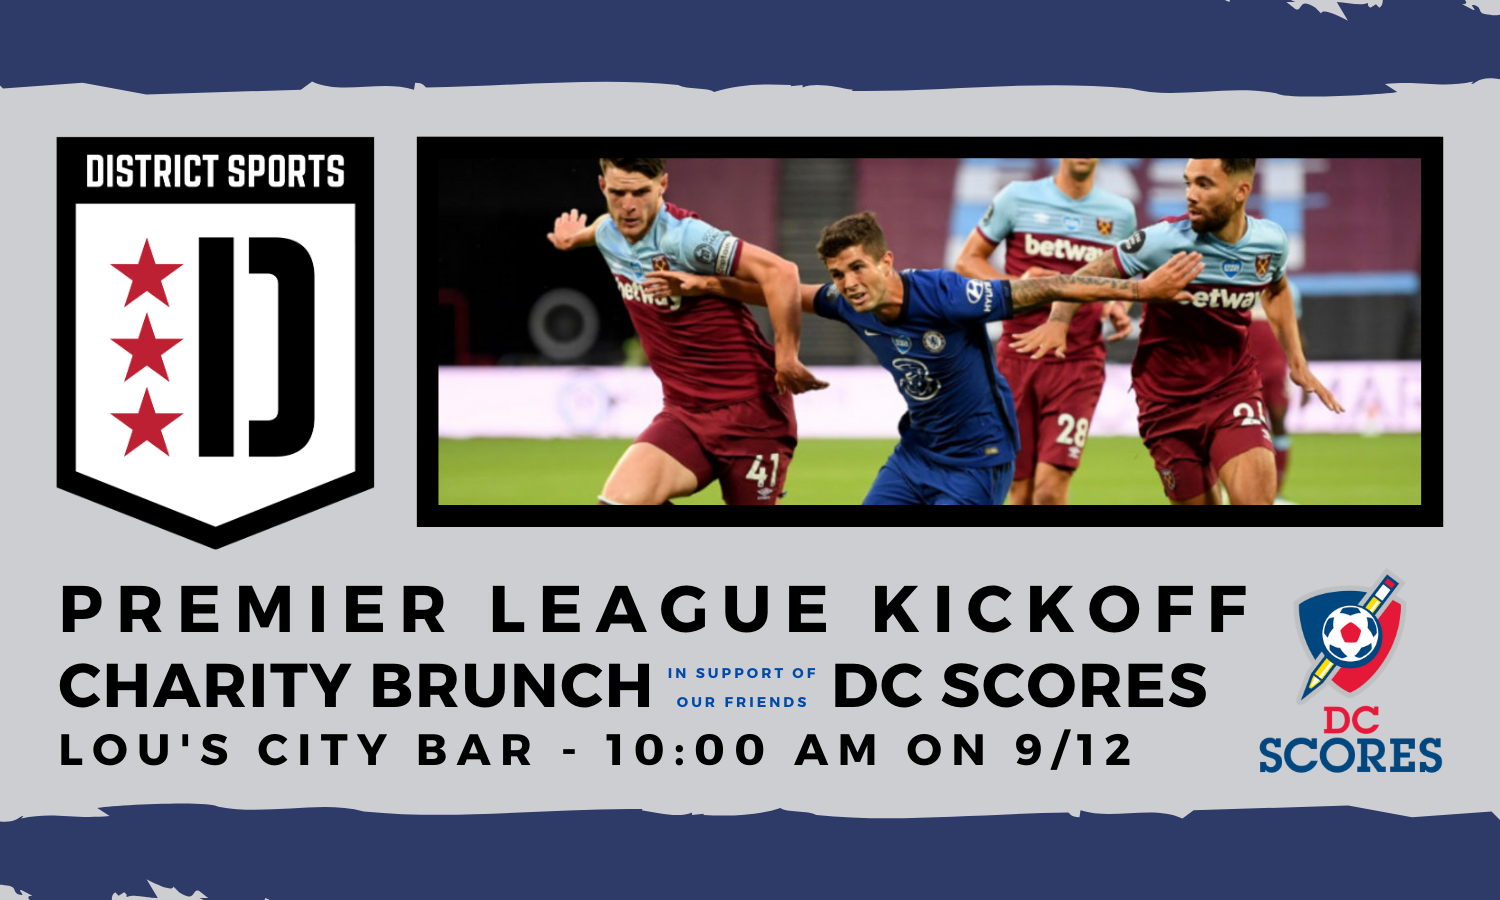 Premier League Kickoff – Charity Brunch to Support DC SCORES!